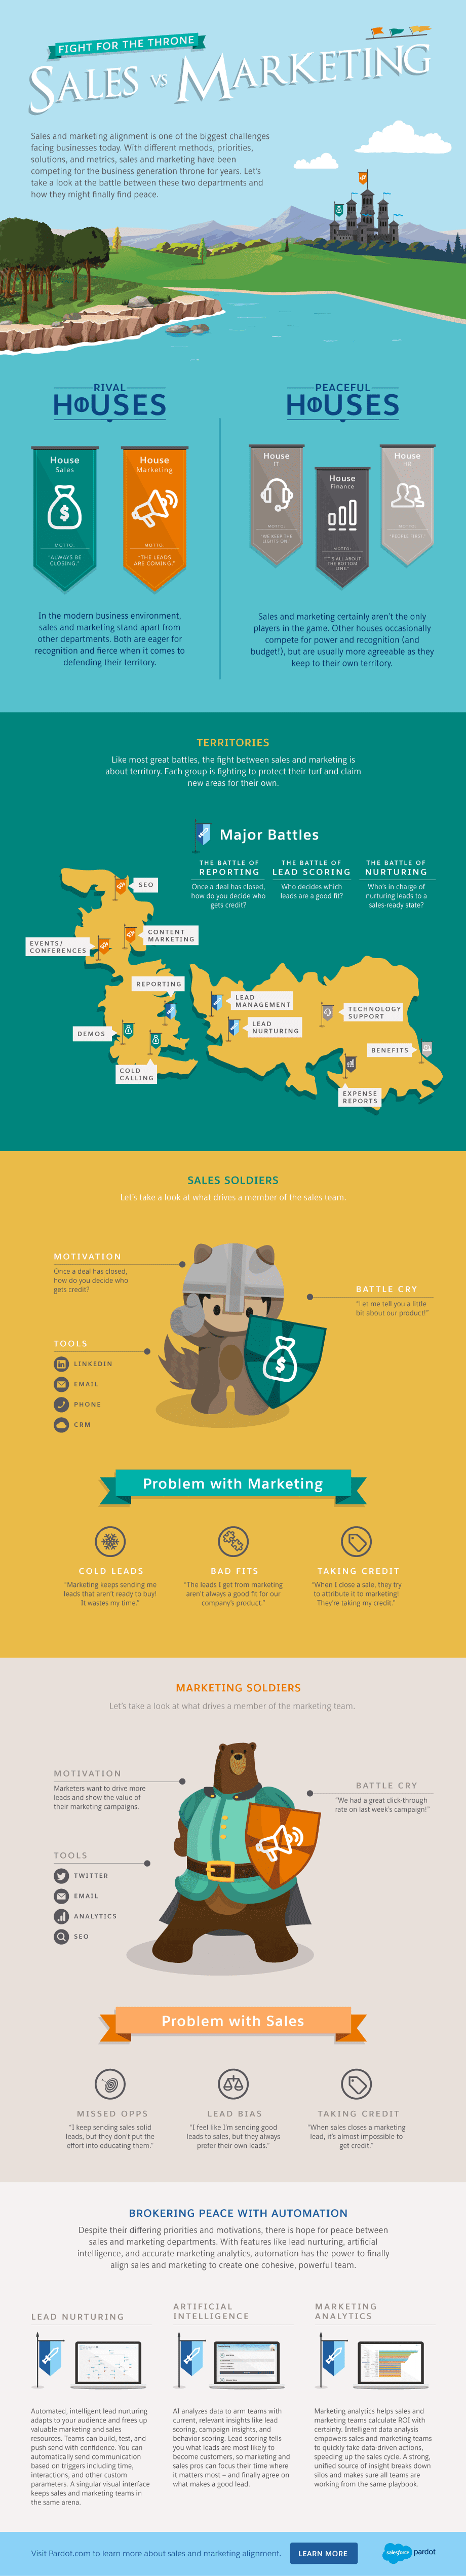 Sales vs. Marketing: Fight for the Throne #infographic